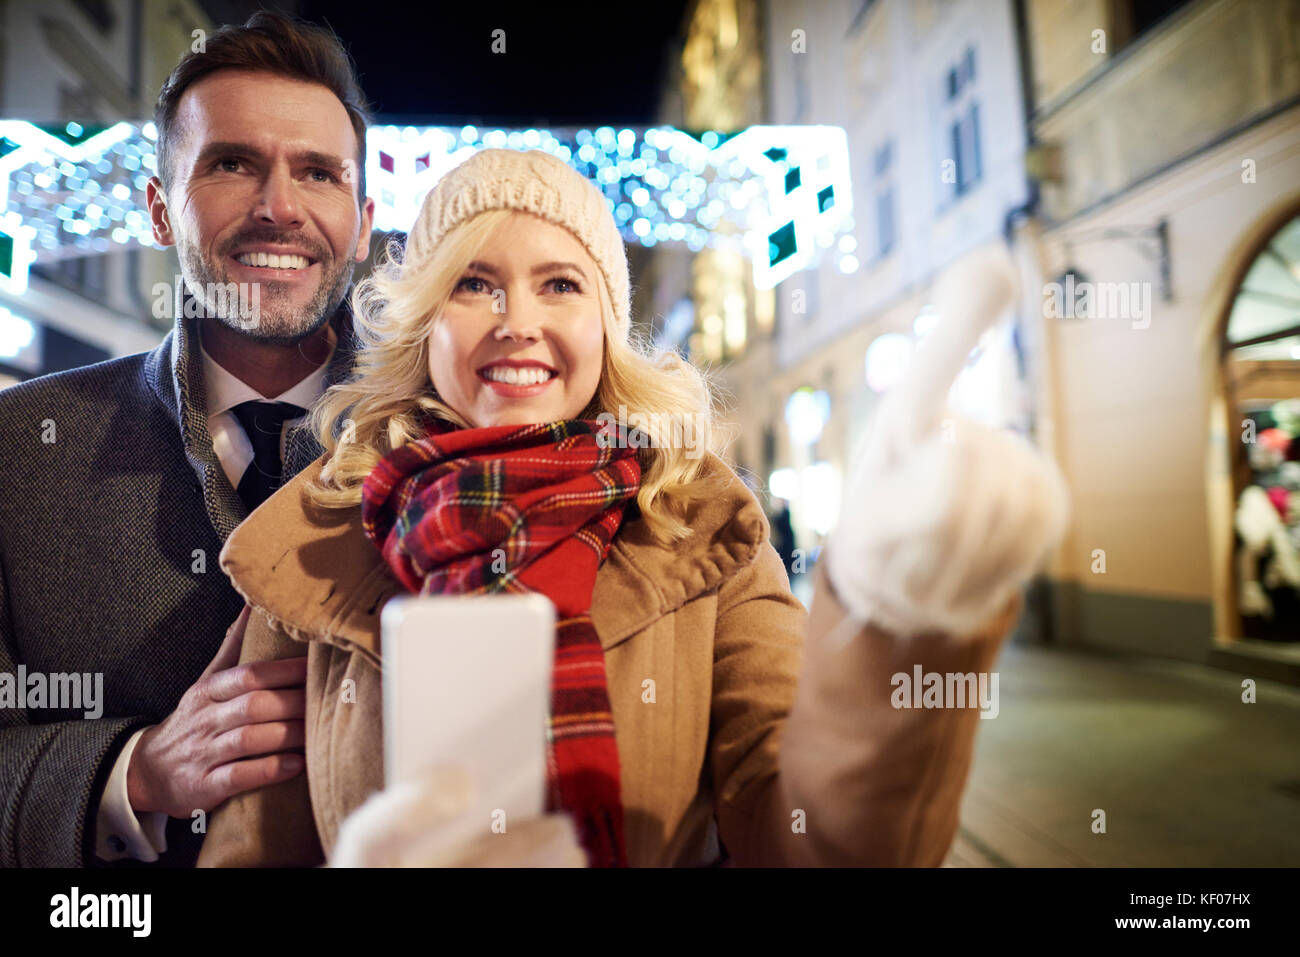 What a wonderful night can be at winter time - Stock Image